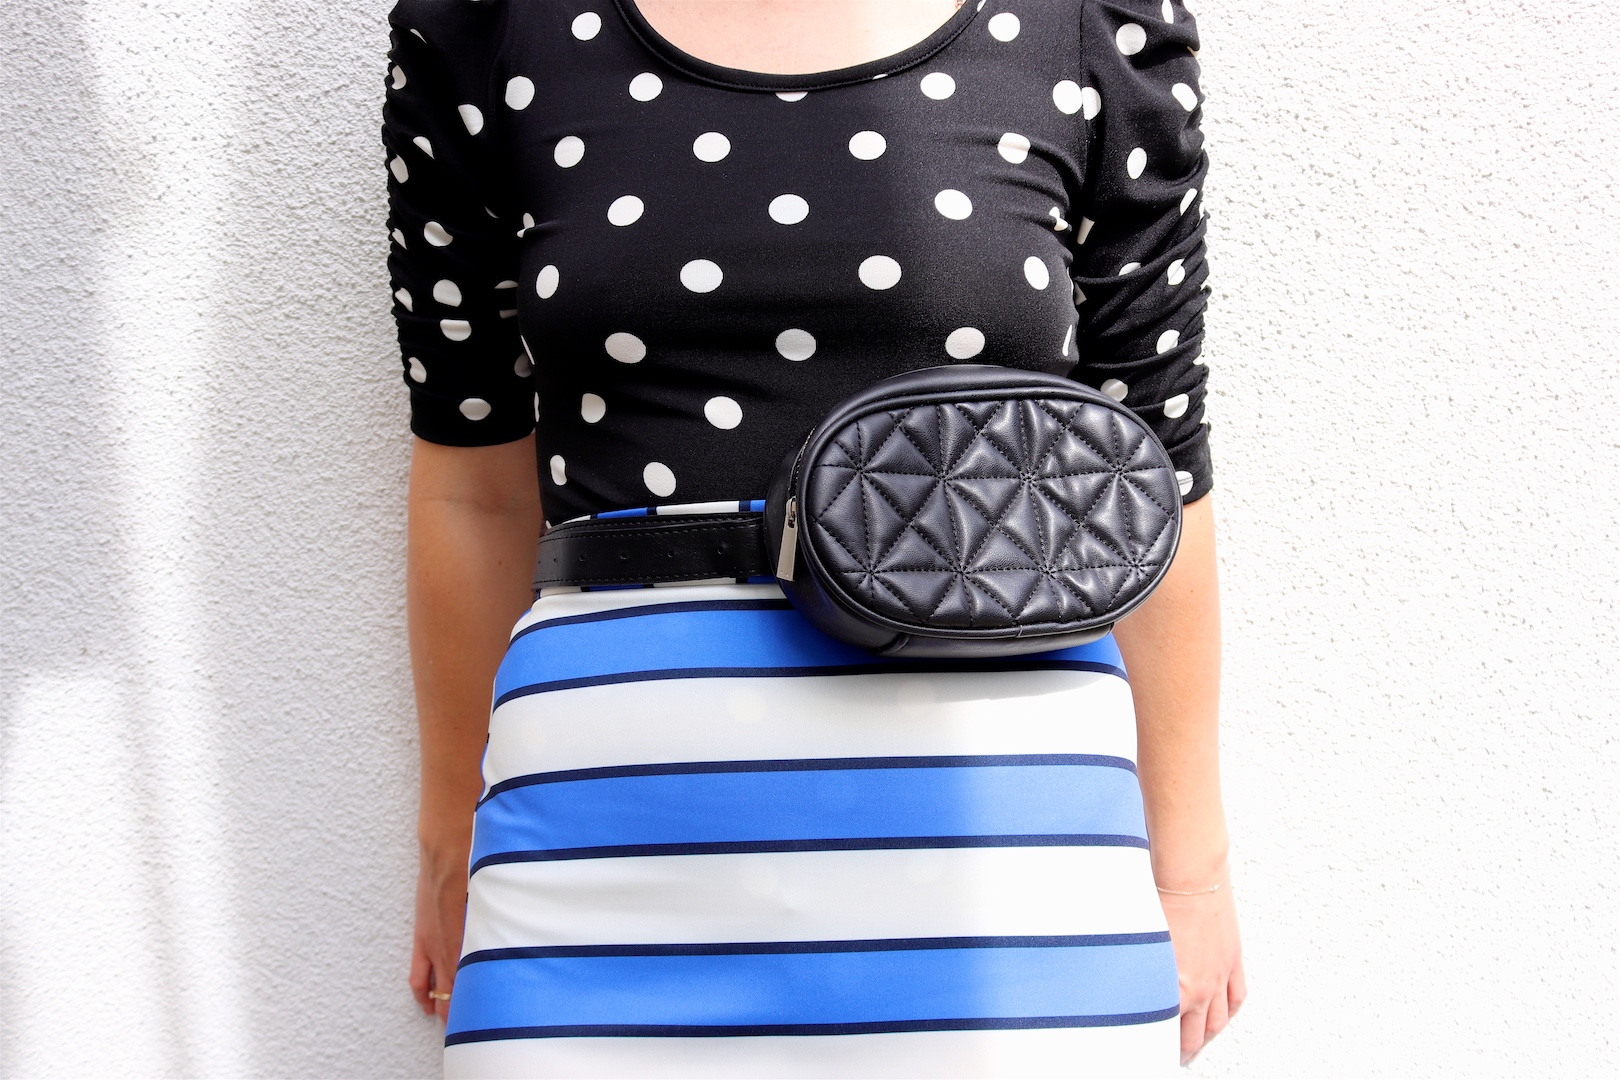 Pattern Mix. Fashion Blogger Girl by Style Blog Heartfelt Hunt. Girl with blond, long bob wearing a polka dot top, striped skirt, rhinestone earrings, belt bag and studded mules.